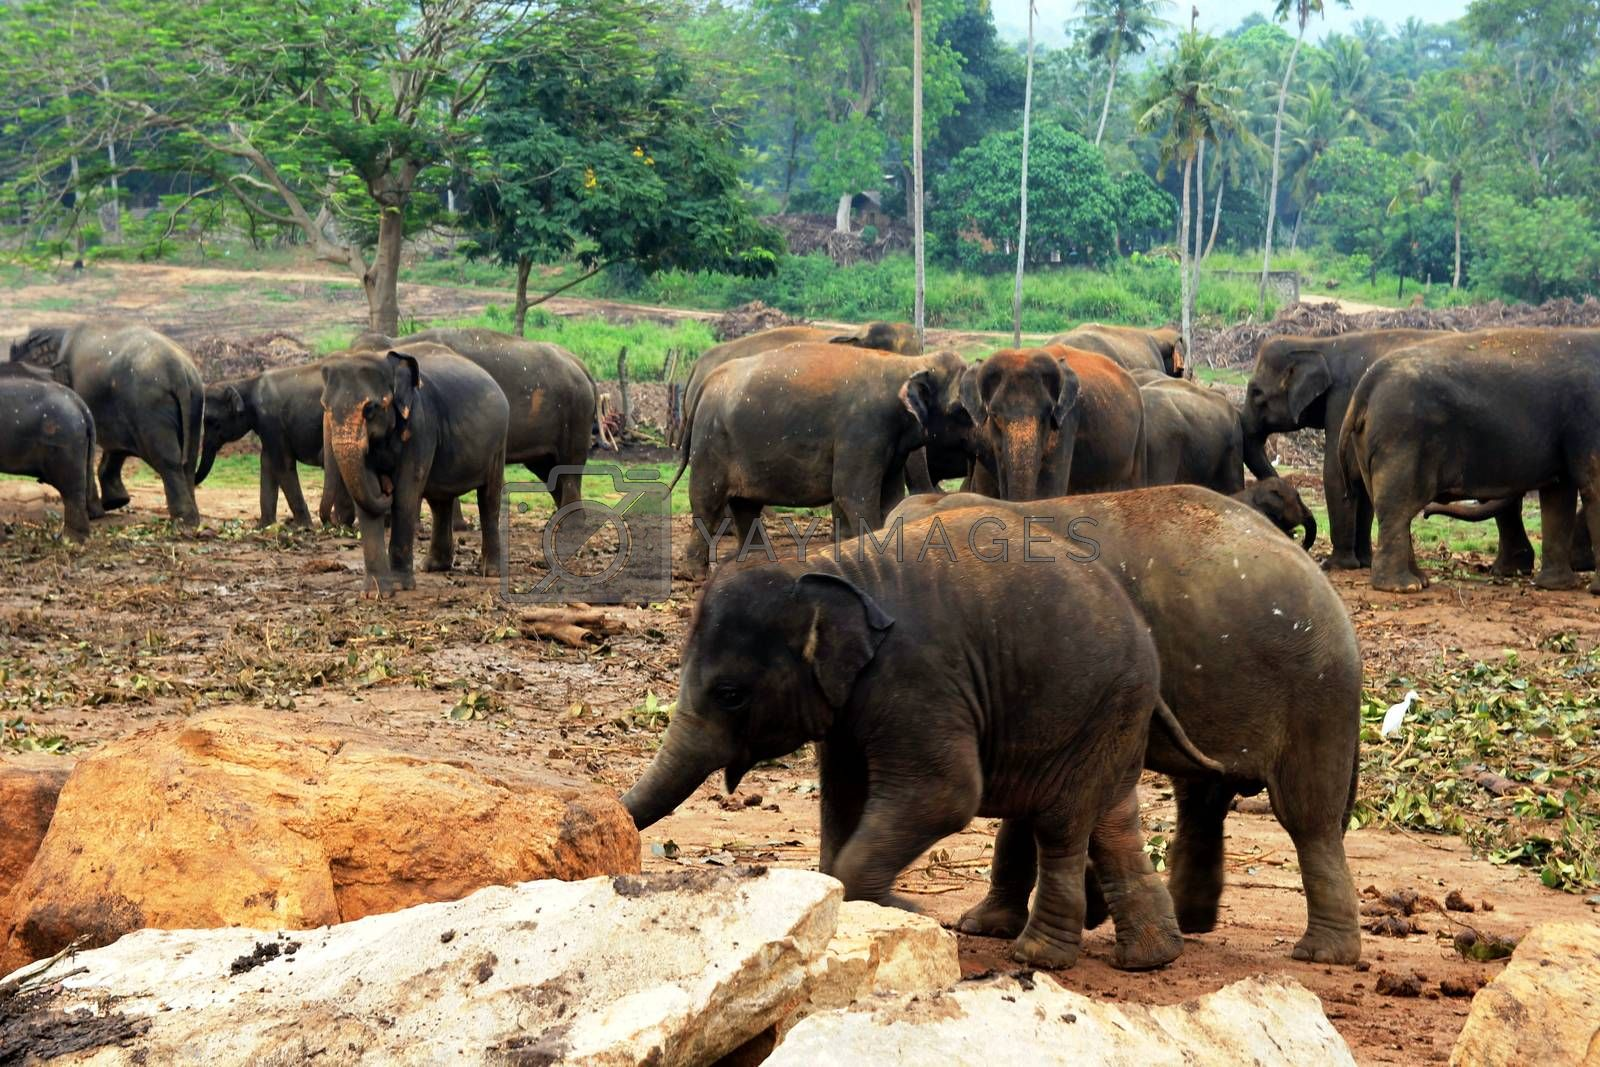 A large herd of brown elephants against the background of the jungle by mdsfotograf